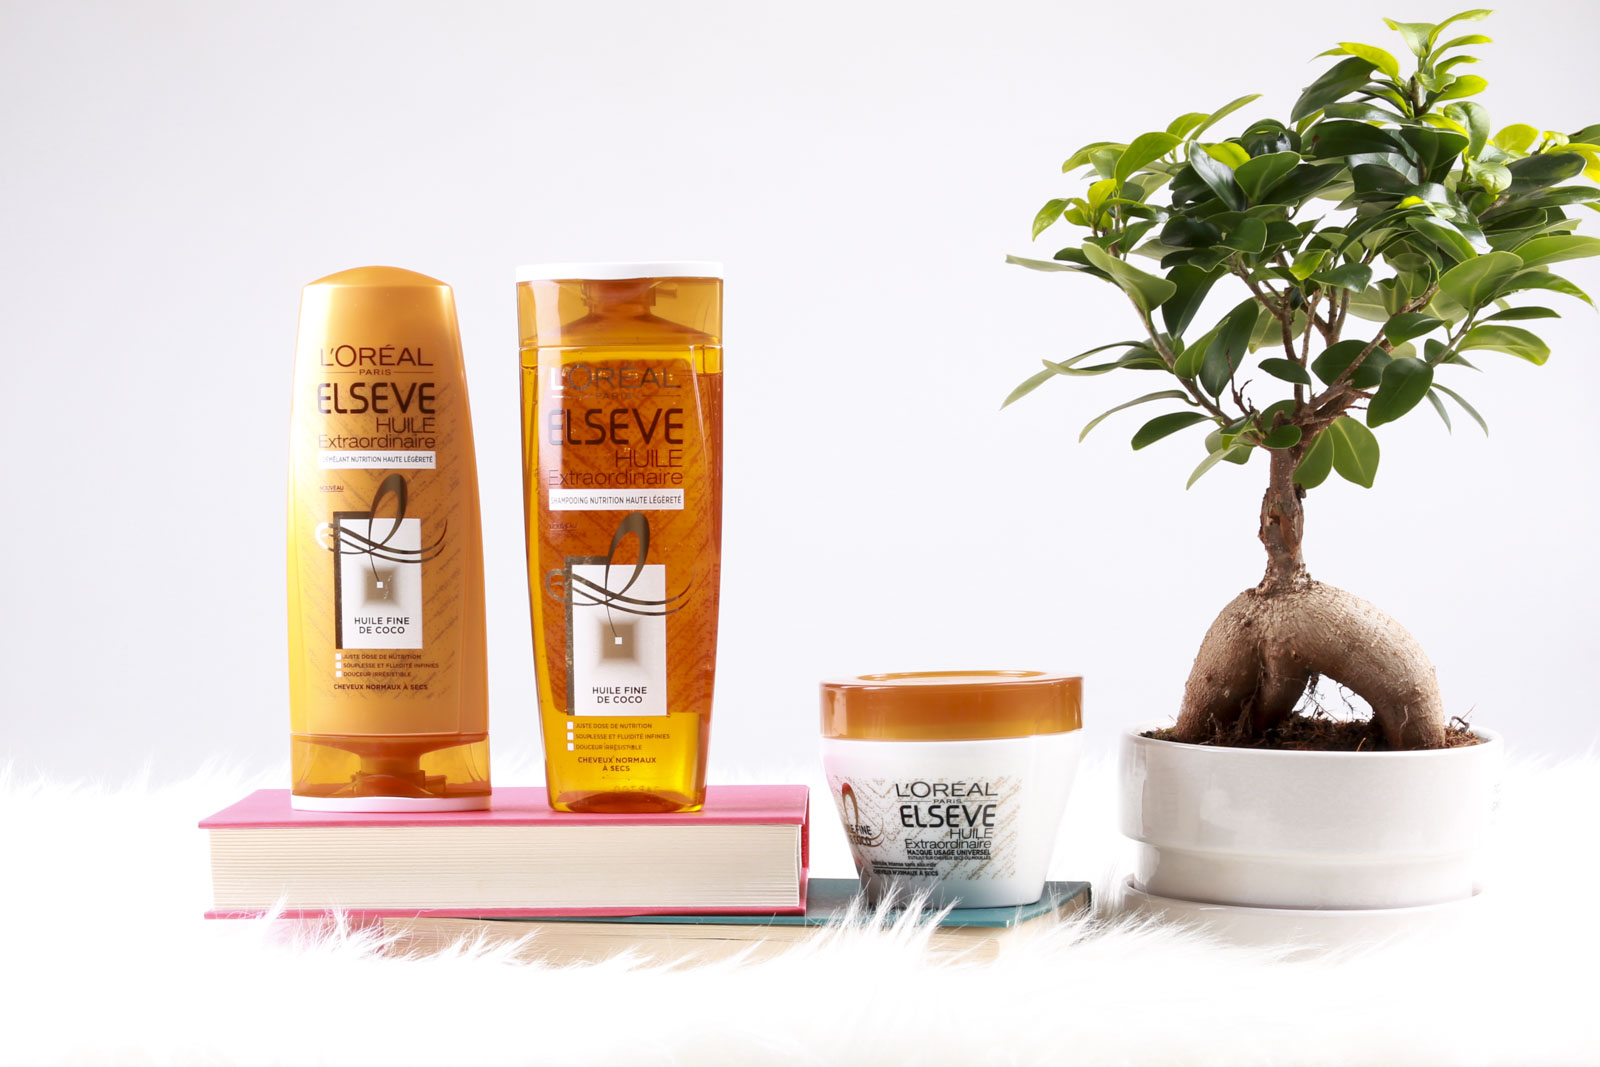 Elseve Extraordinary Oil Coconut